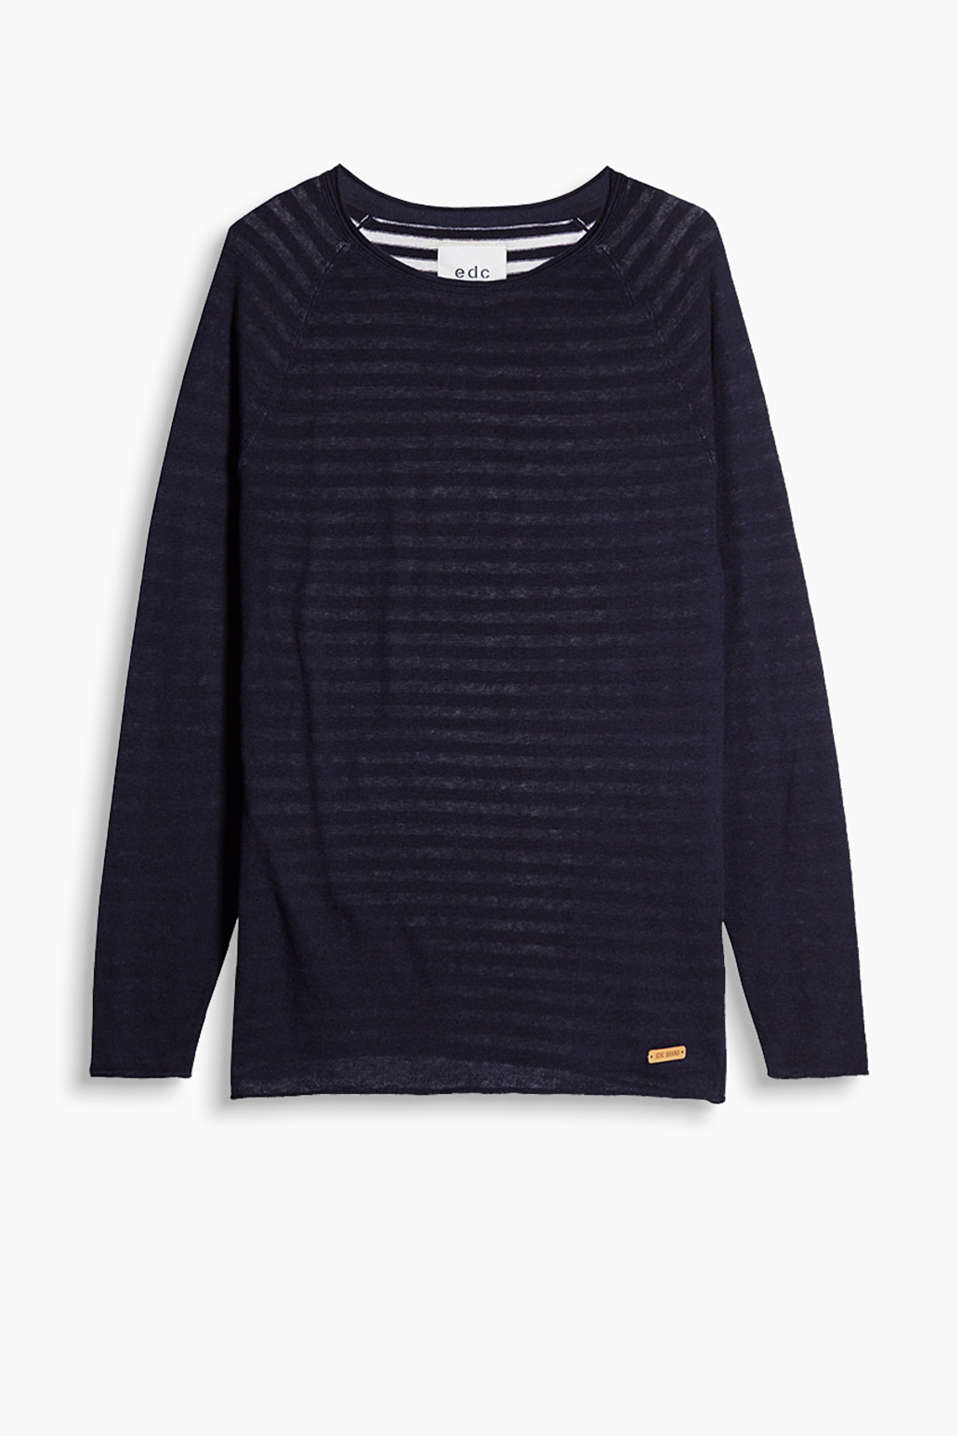 Fine-knit, cotton yarn jumper with a round neck, raglan sleeves and shimmering, striped layered-effect inserts